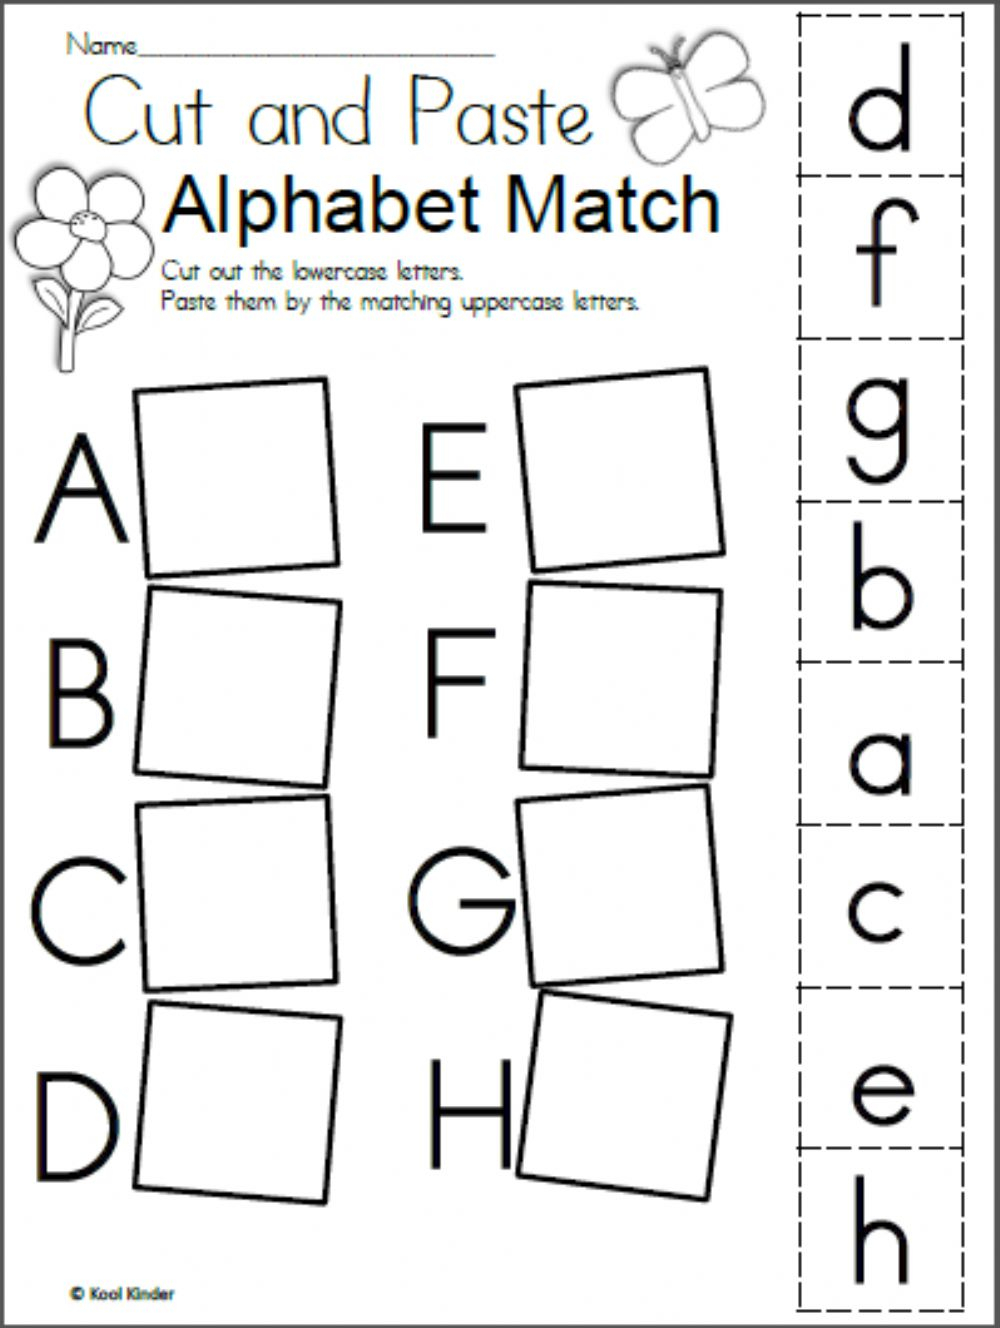 Alphabet Matching - Interactive Worksheet for Alphabet Matching Worksheets Pdf